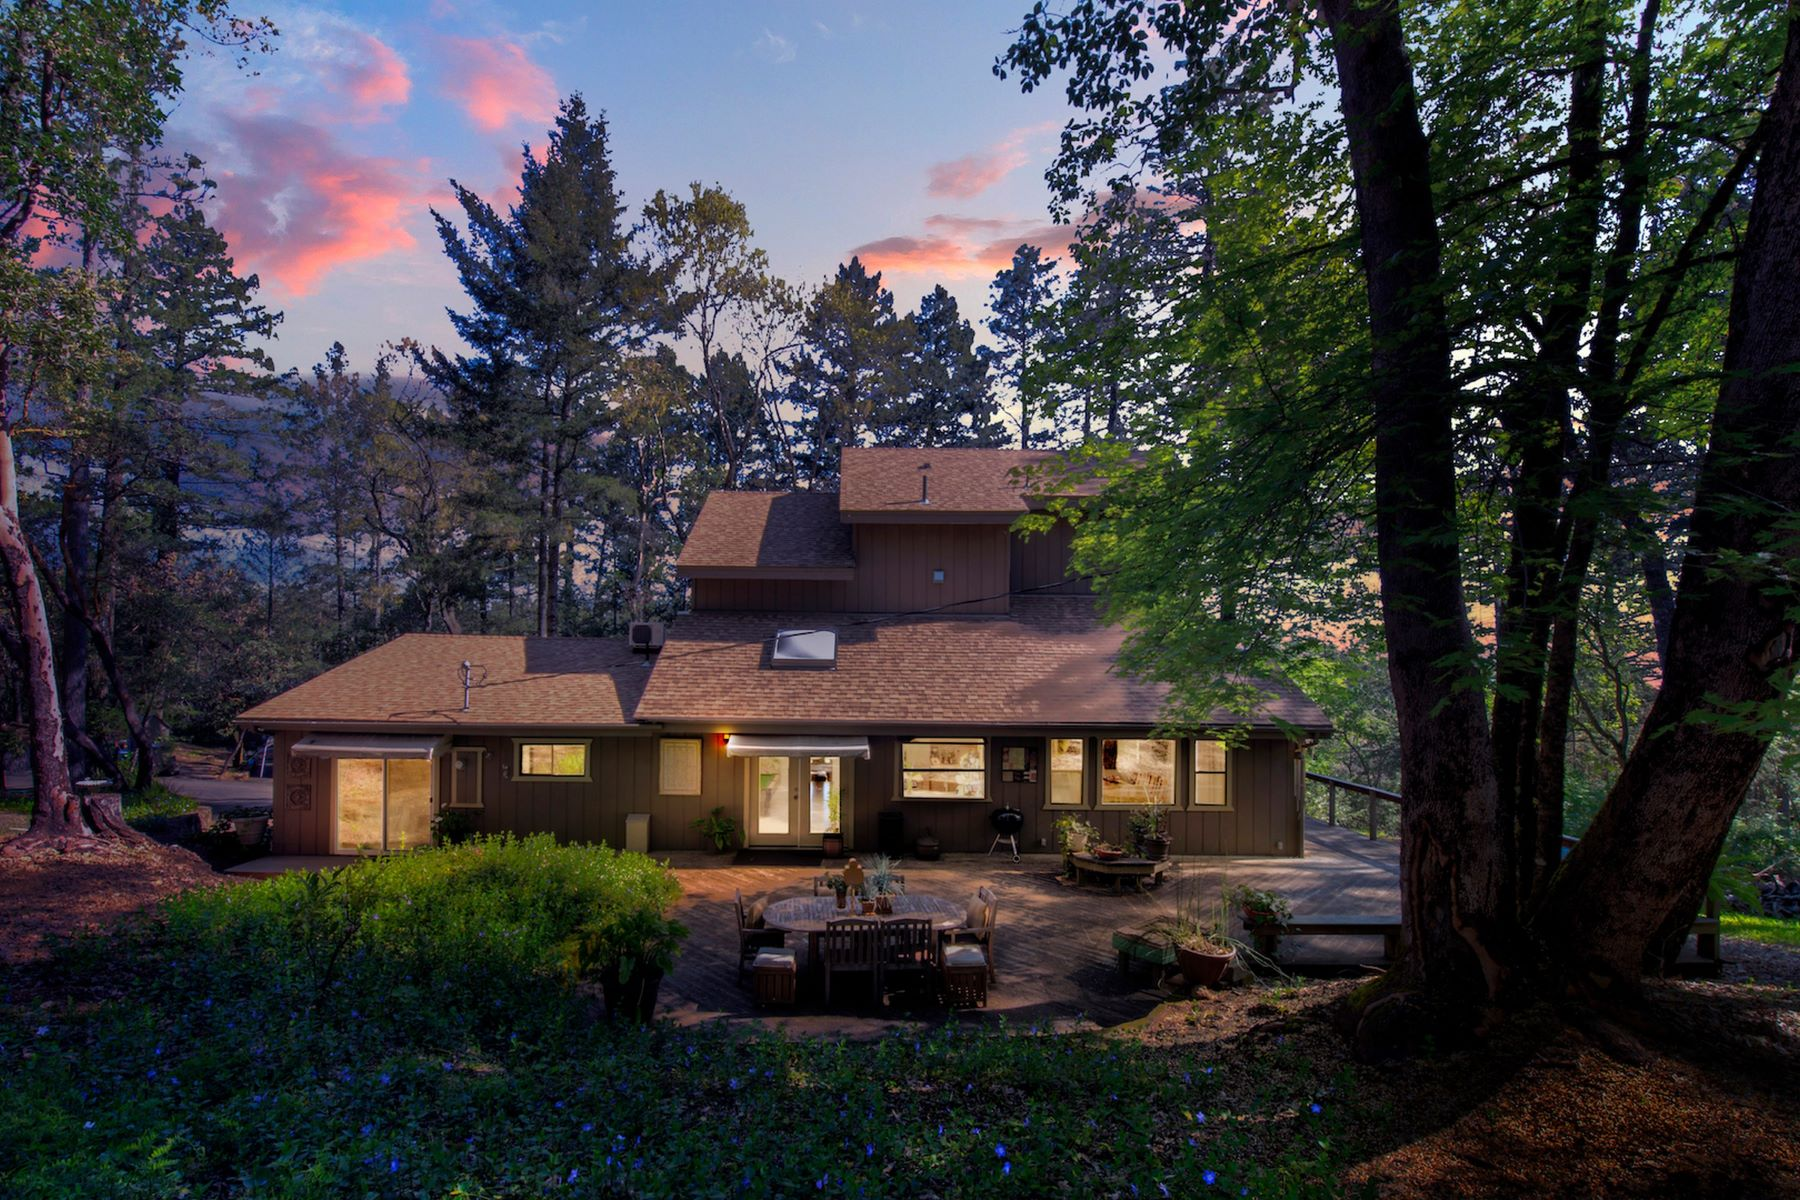 Single Family Homes for Active at Howell Mountain Retreat 1381 Summit Lake Drive Angwin, California 94508 United States